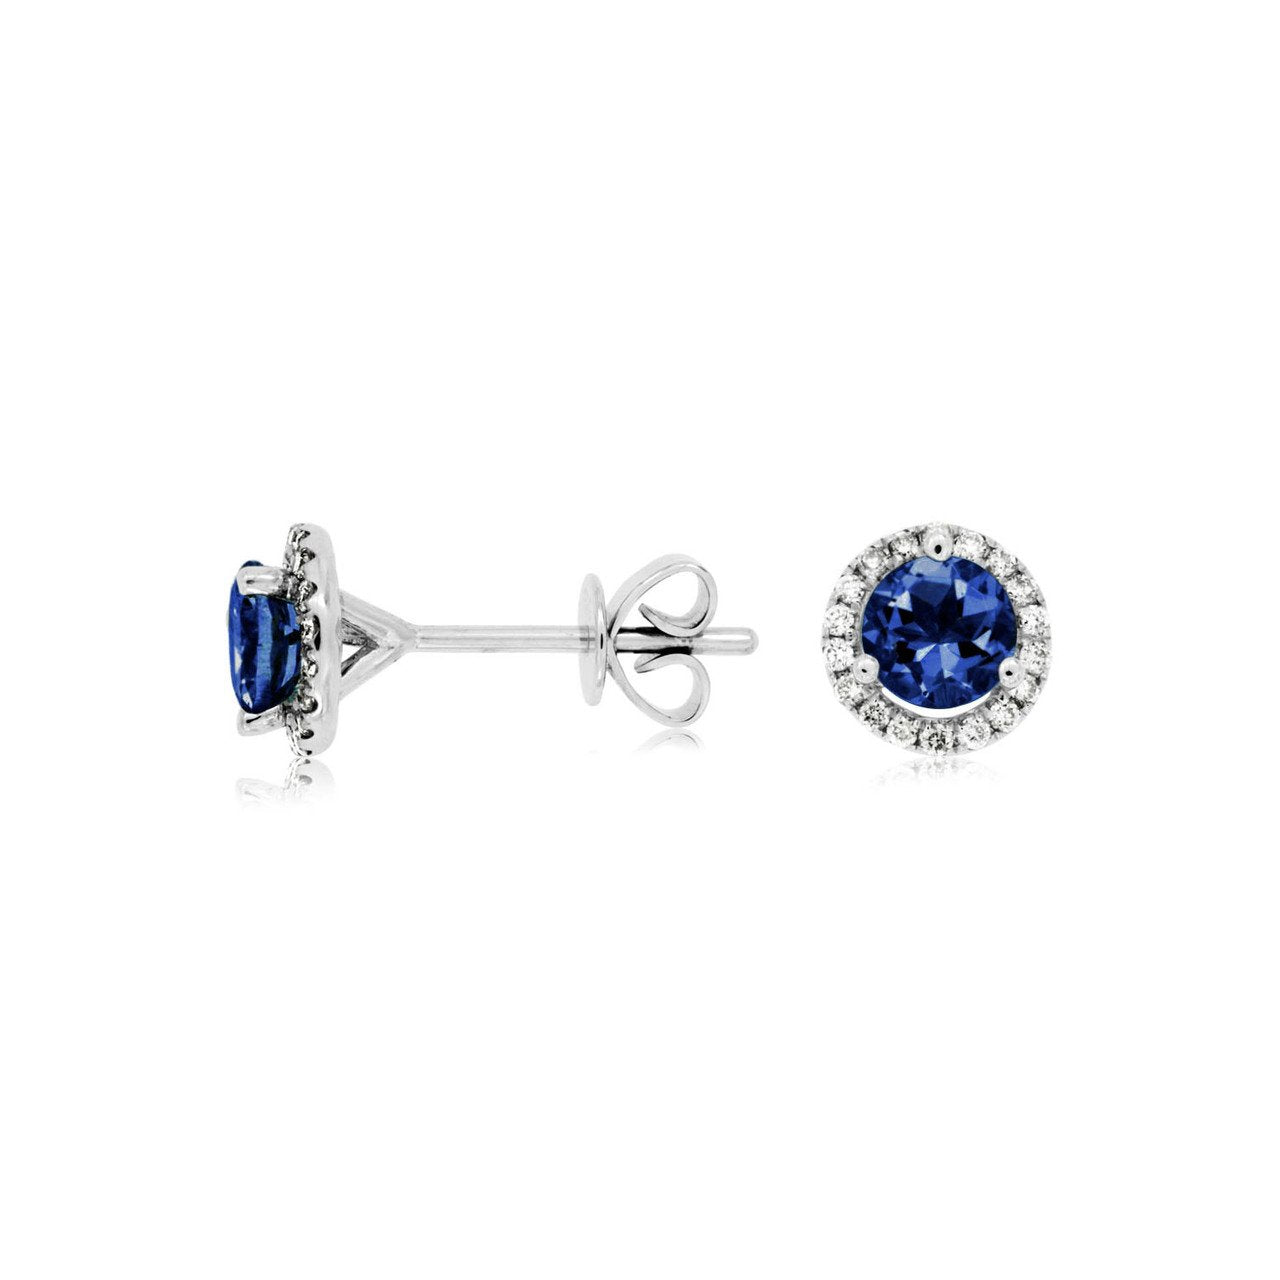 Sabel Collection 14K White Gold Sapphire and Diamond Halo Stud Earrings